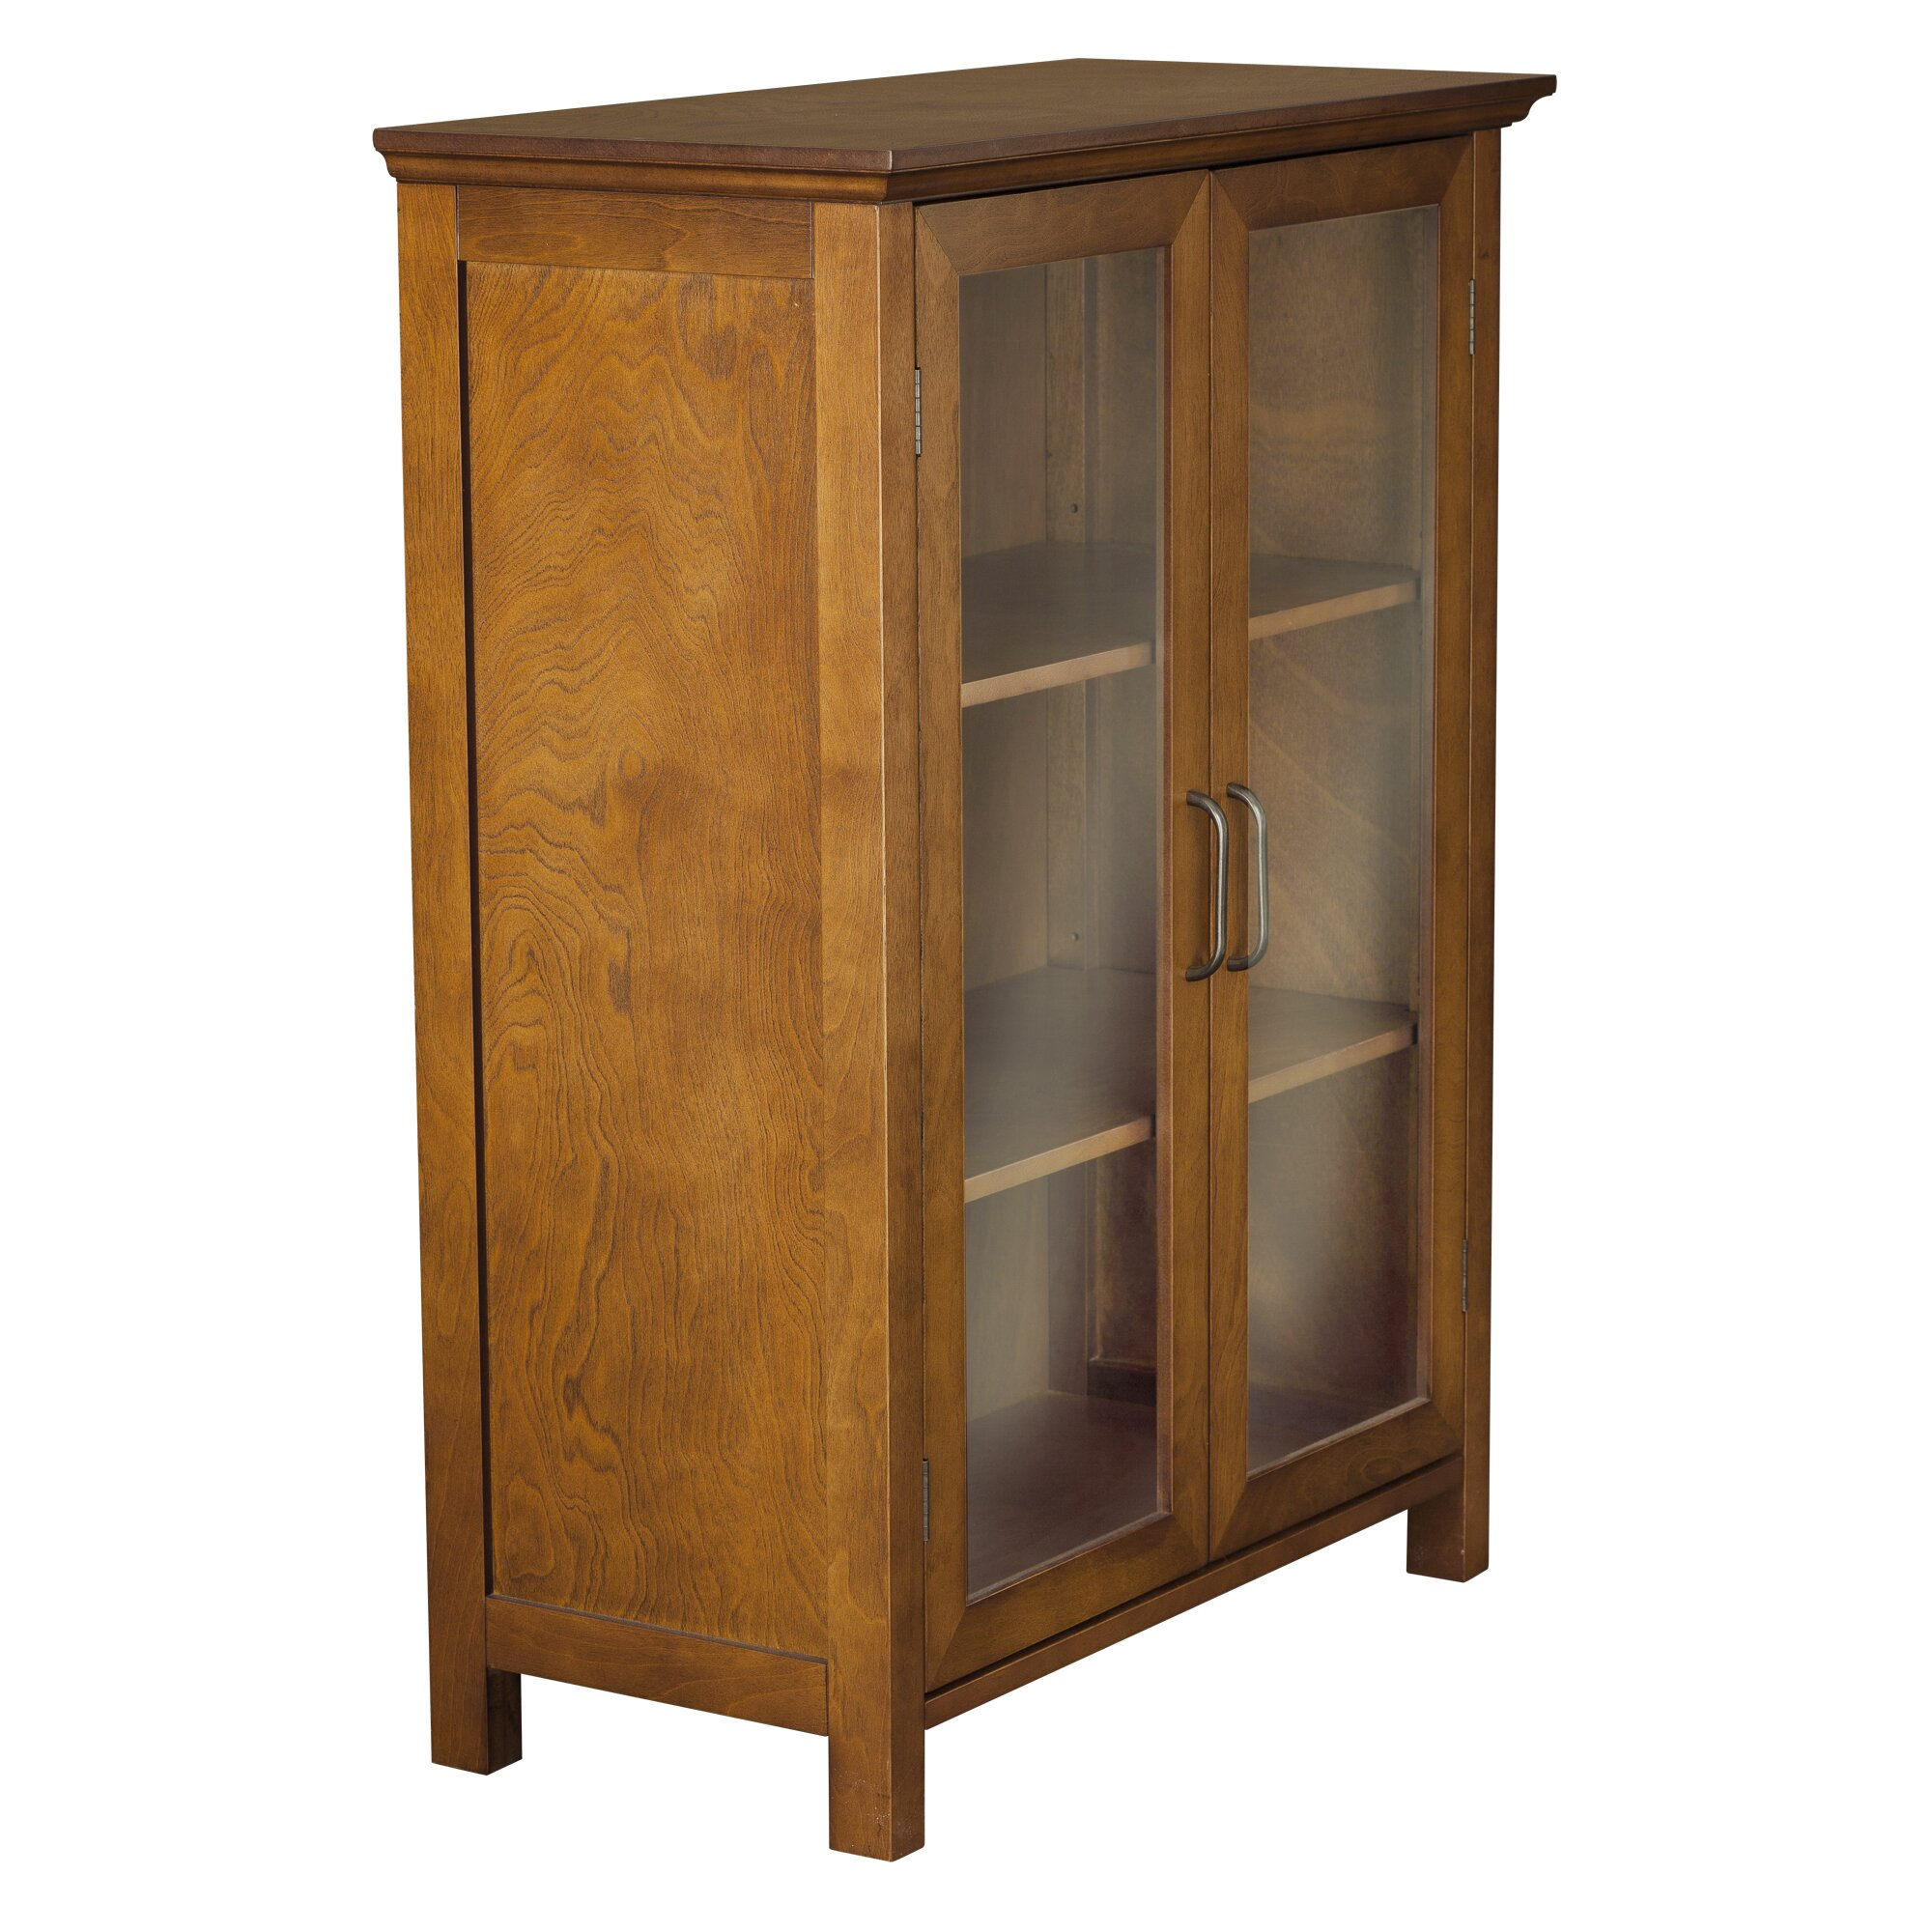 """Free Standing Kitchen Cabinets With Glass Doors: Elegant Home Fashions Avery 26"""" W X 34"""" H Cabinet"""